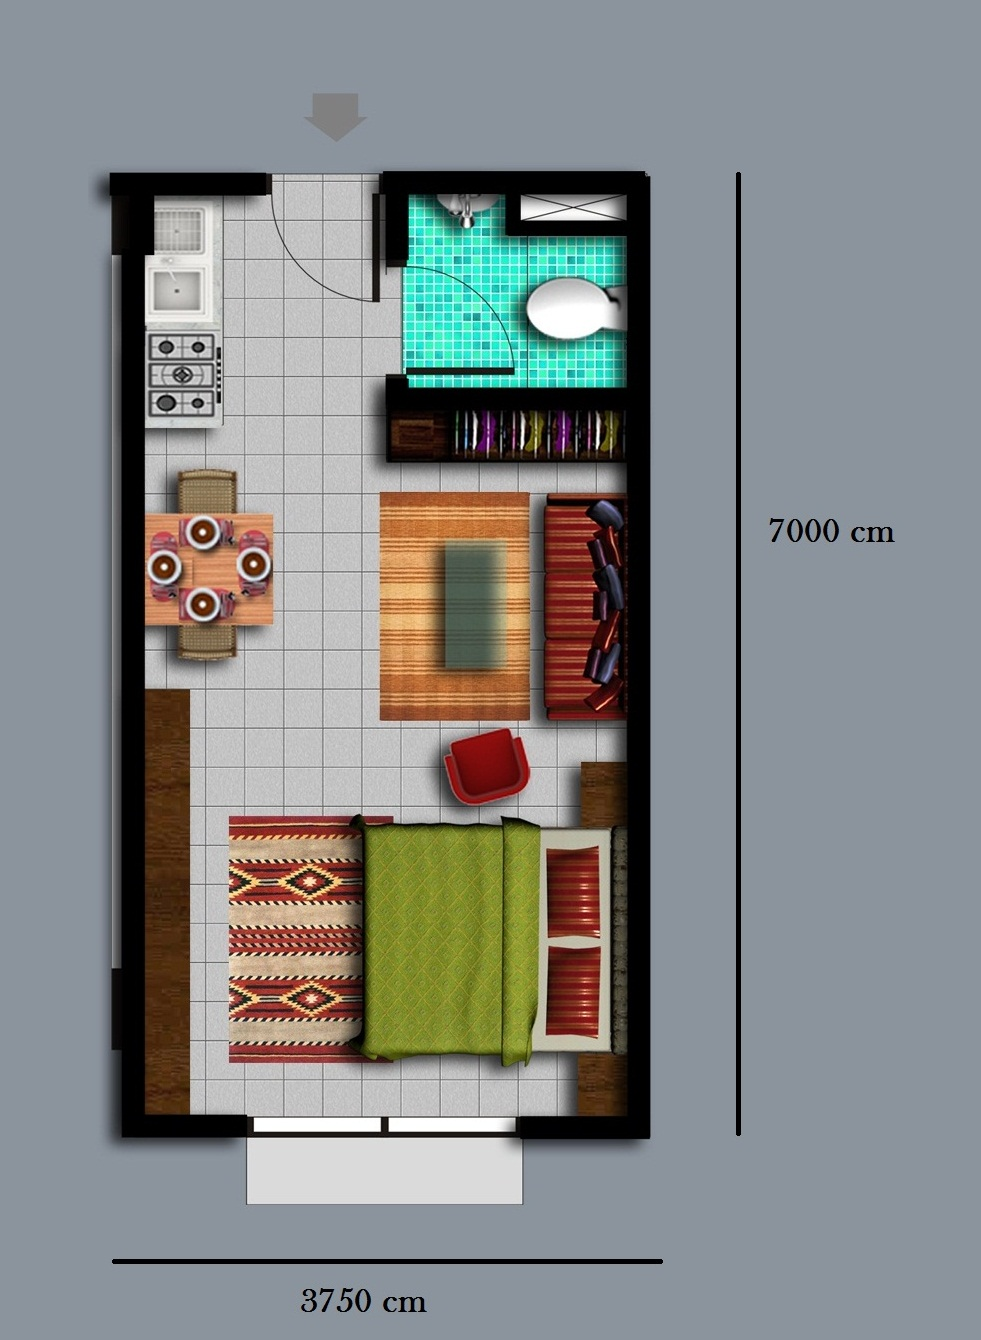 Nagoya Mansion Types Of The Apartment